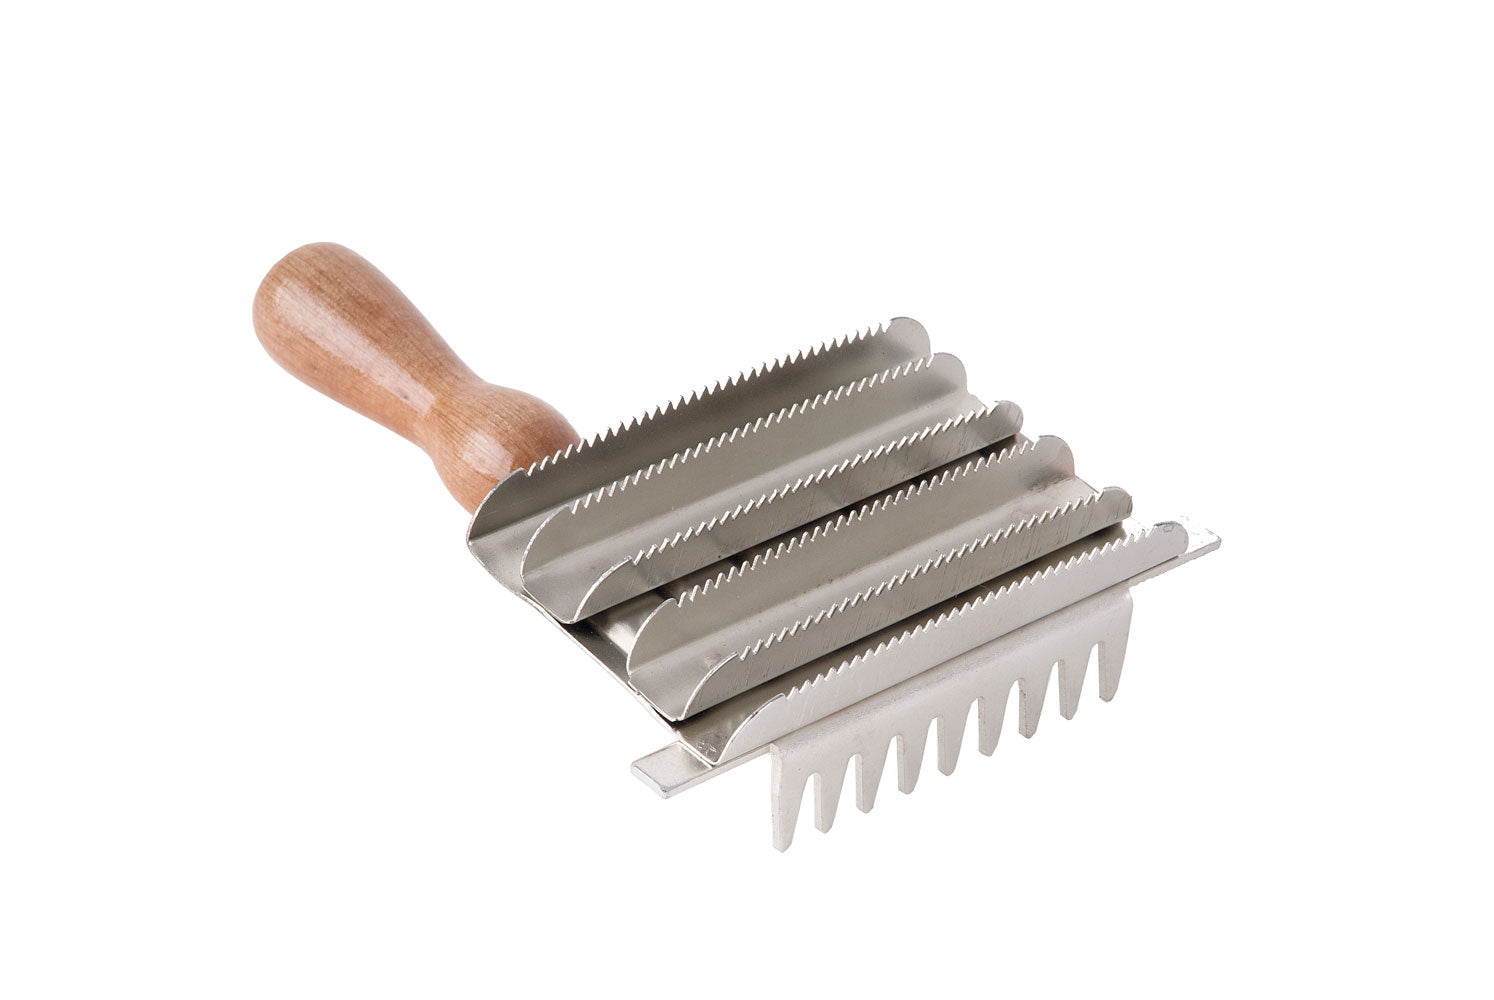 HARLEQUIN METAL CURRY COMB